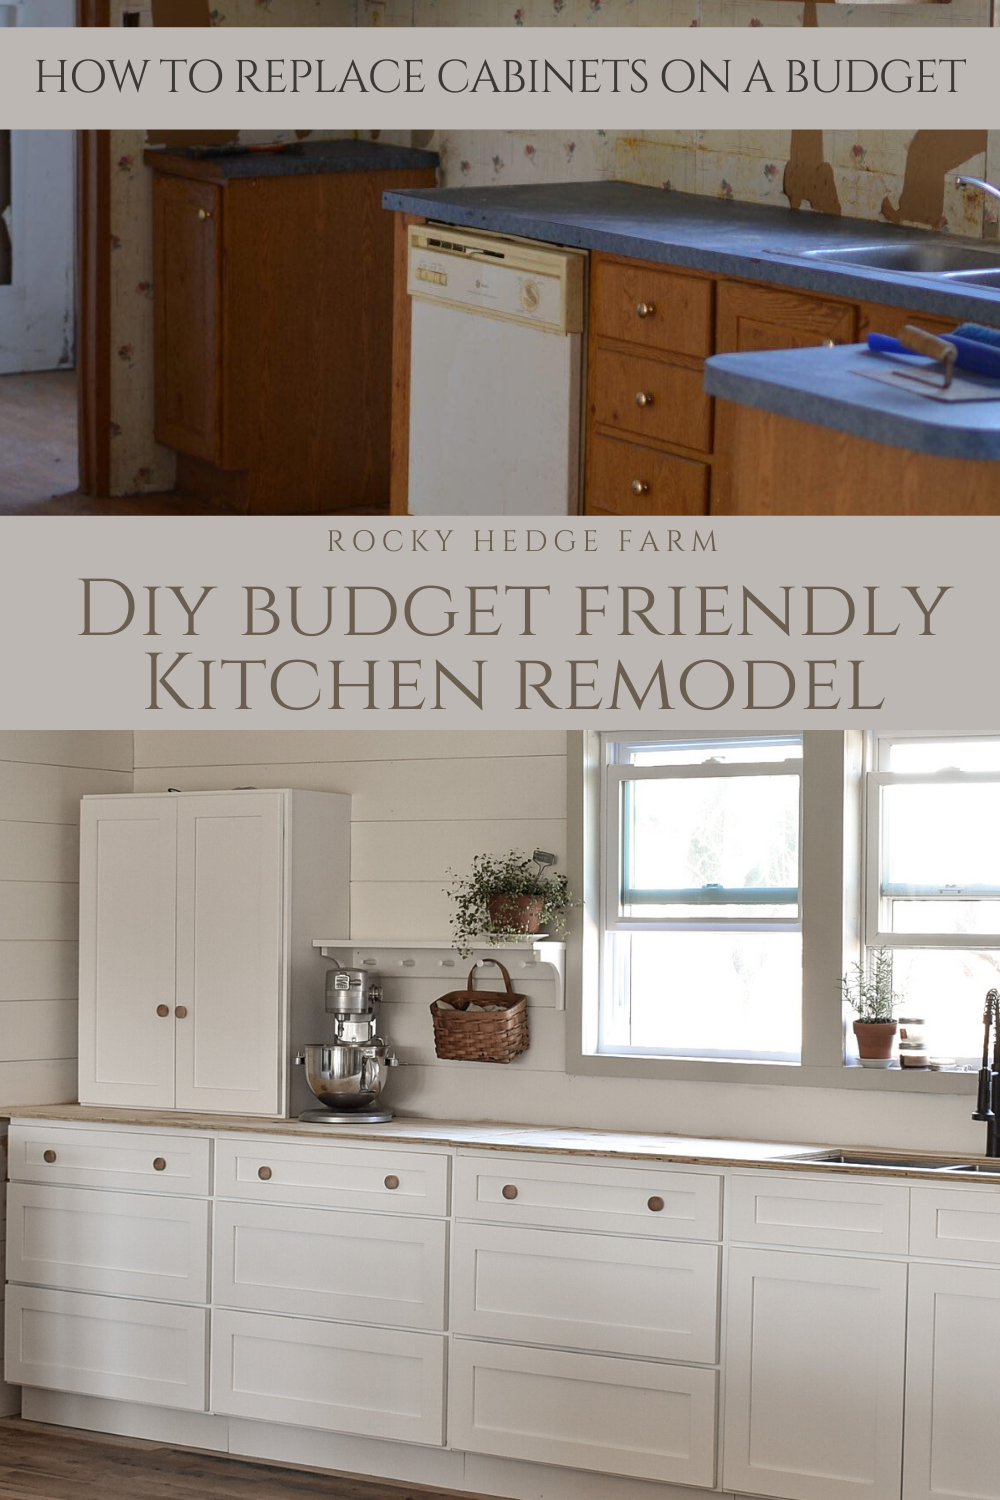 Kitchen Cabinet Remodel On A Budget In 2020 Mobile Home Kitchen Cabinets Budget Kitchen Remodel Budget Friendly Kitchen Remodel